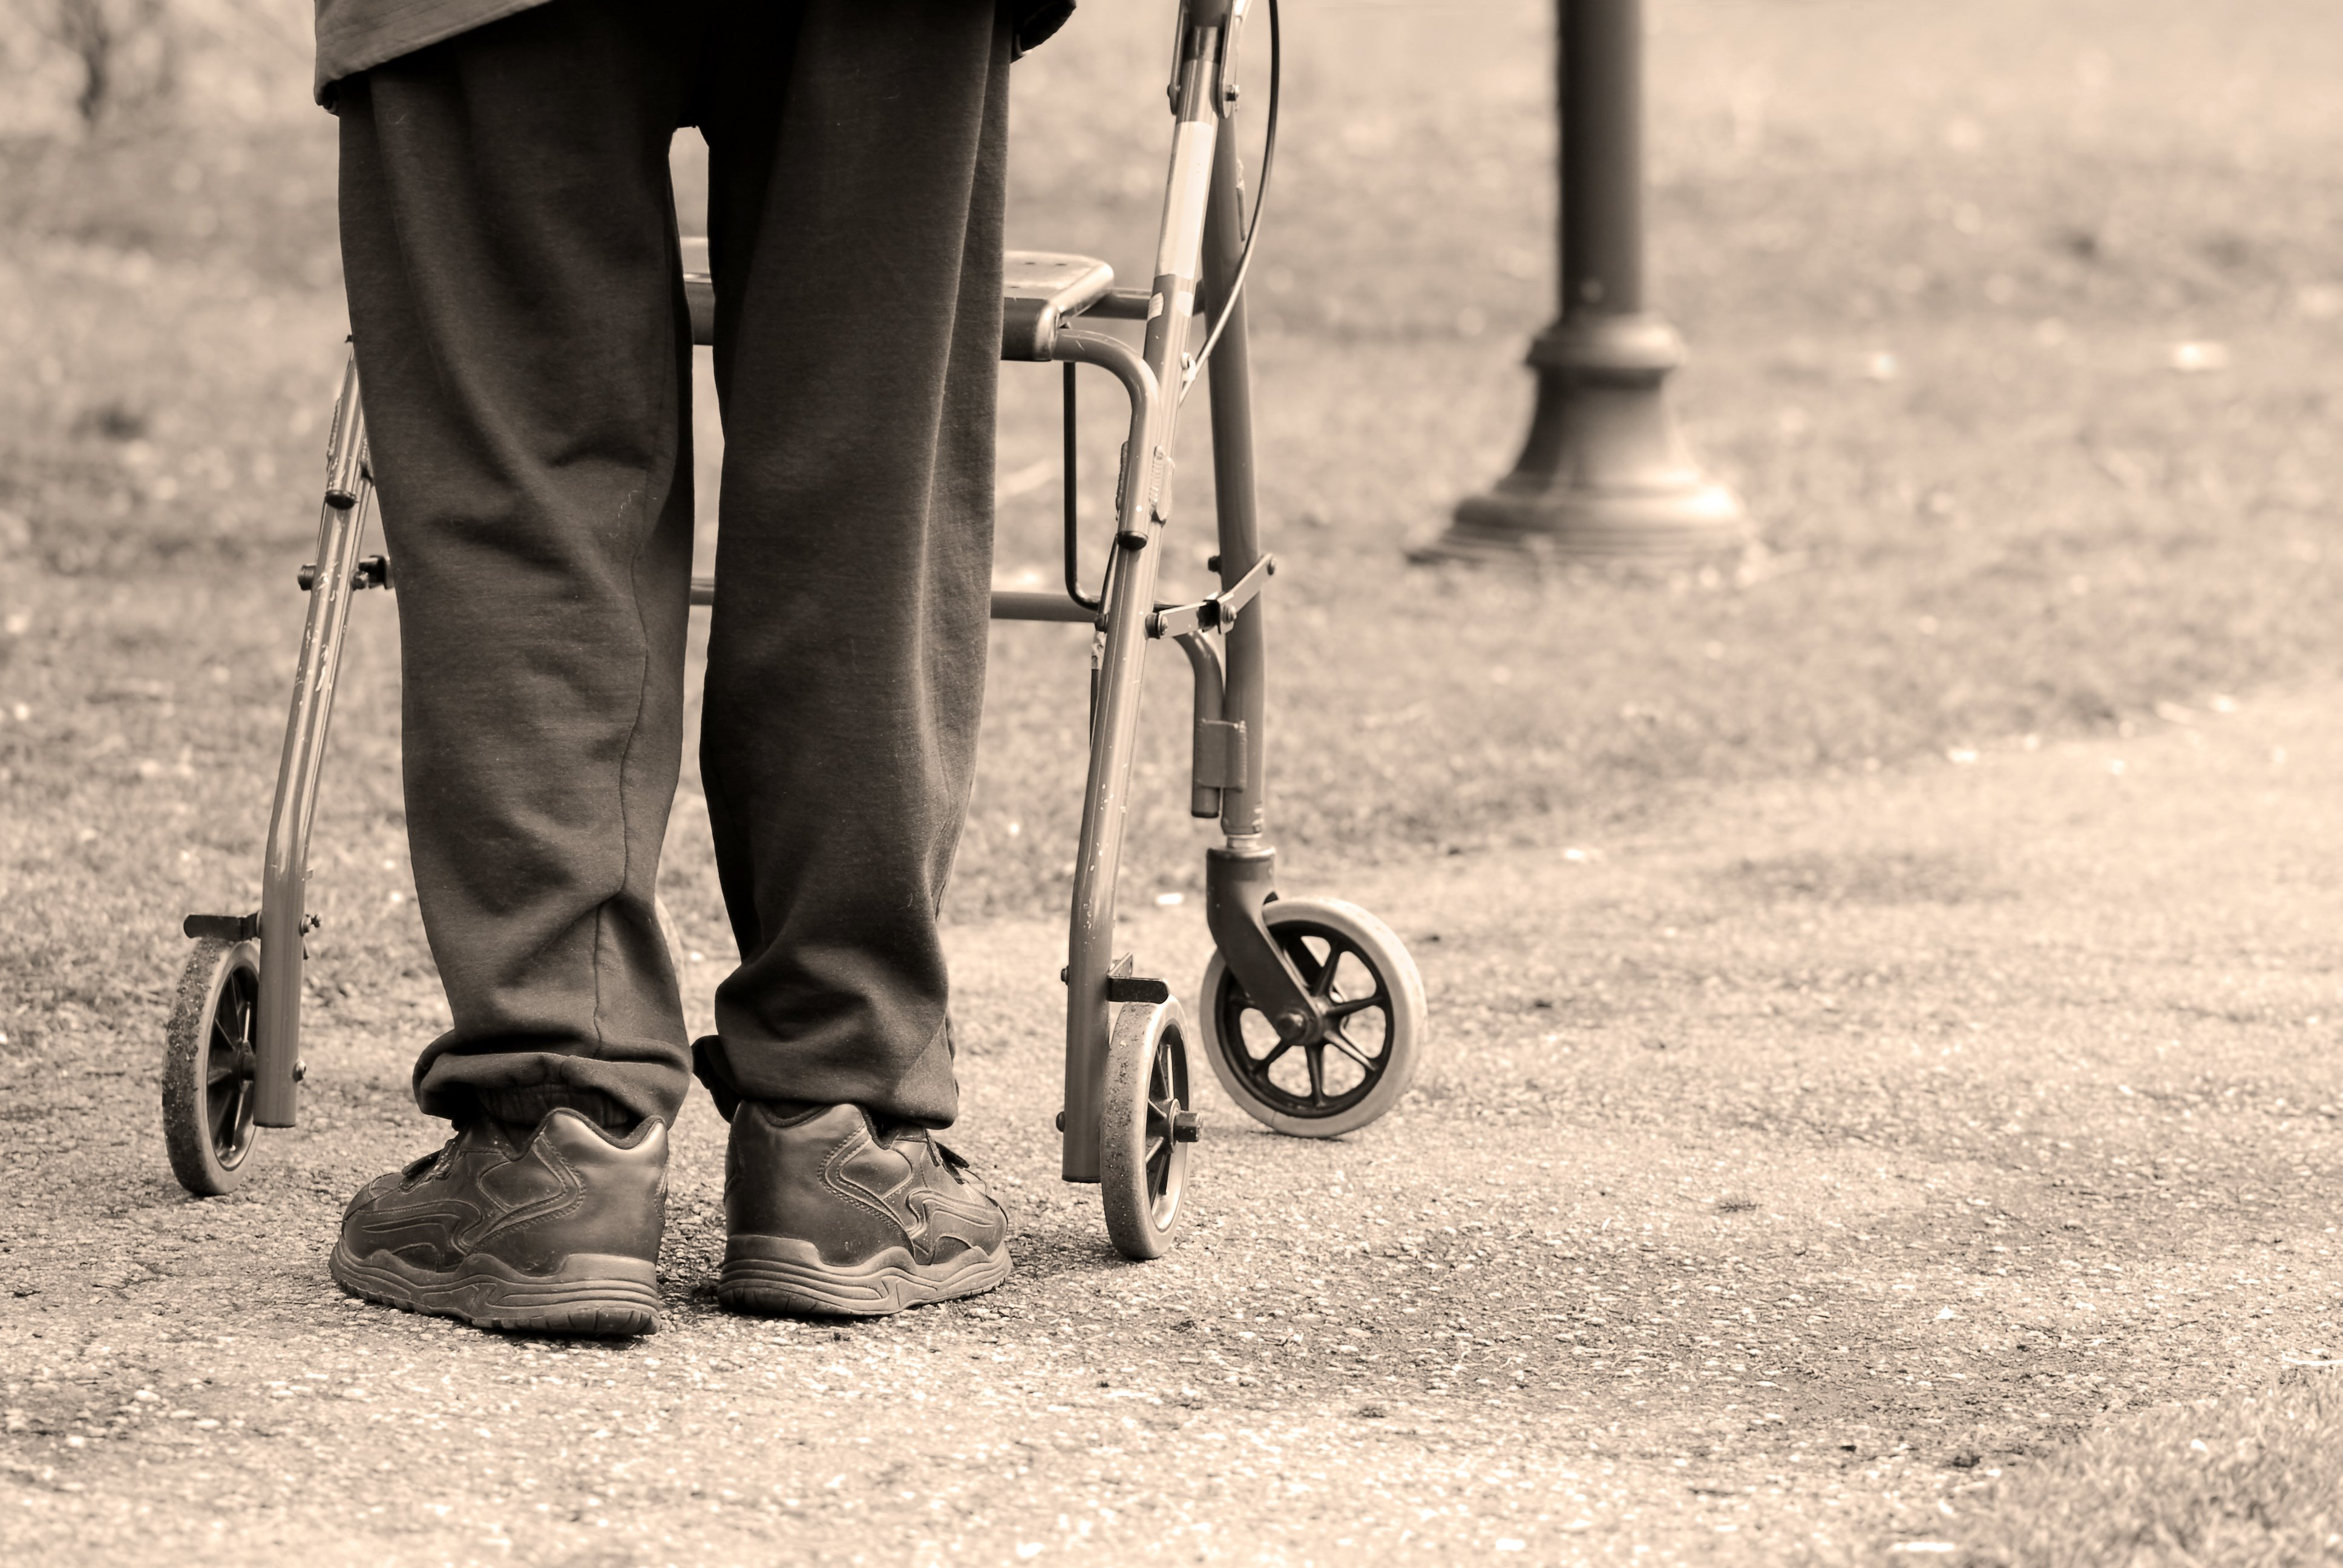 An elderly man with his walker was left inside a burning home. | Photo: Shutterstock